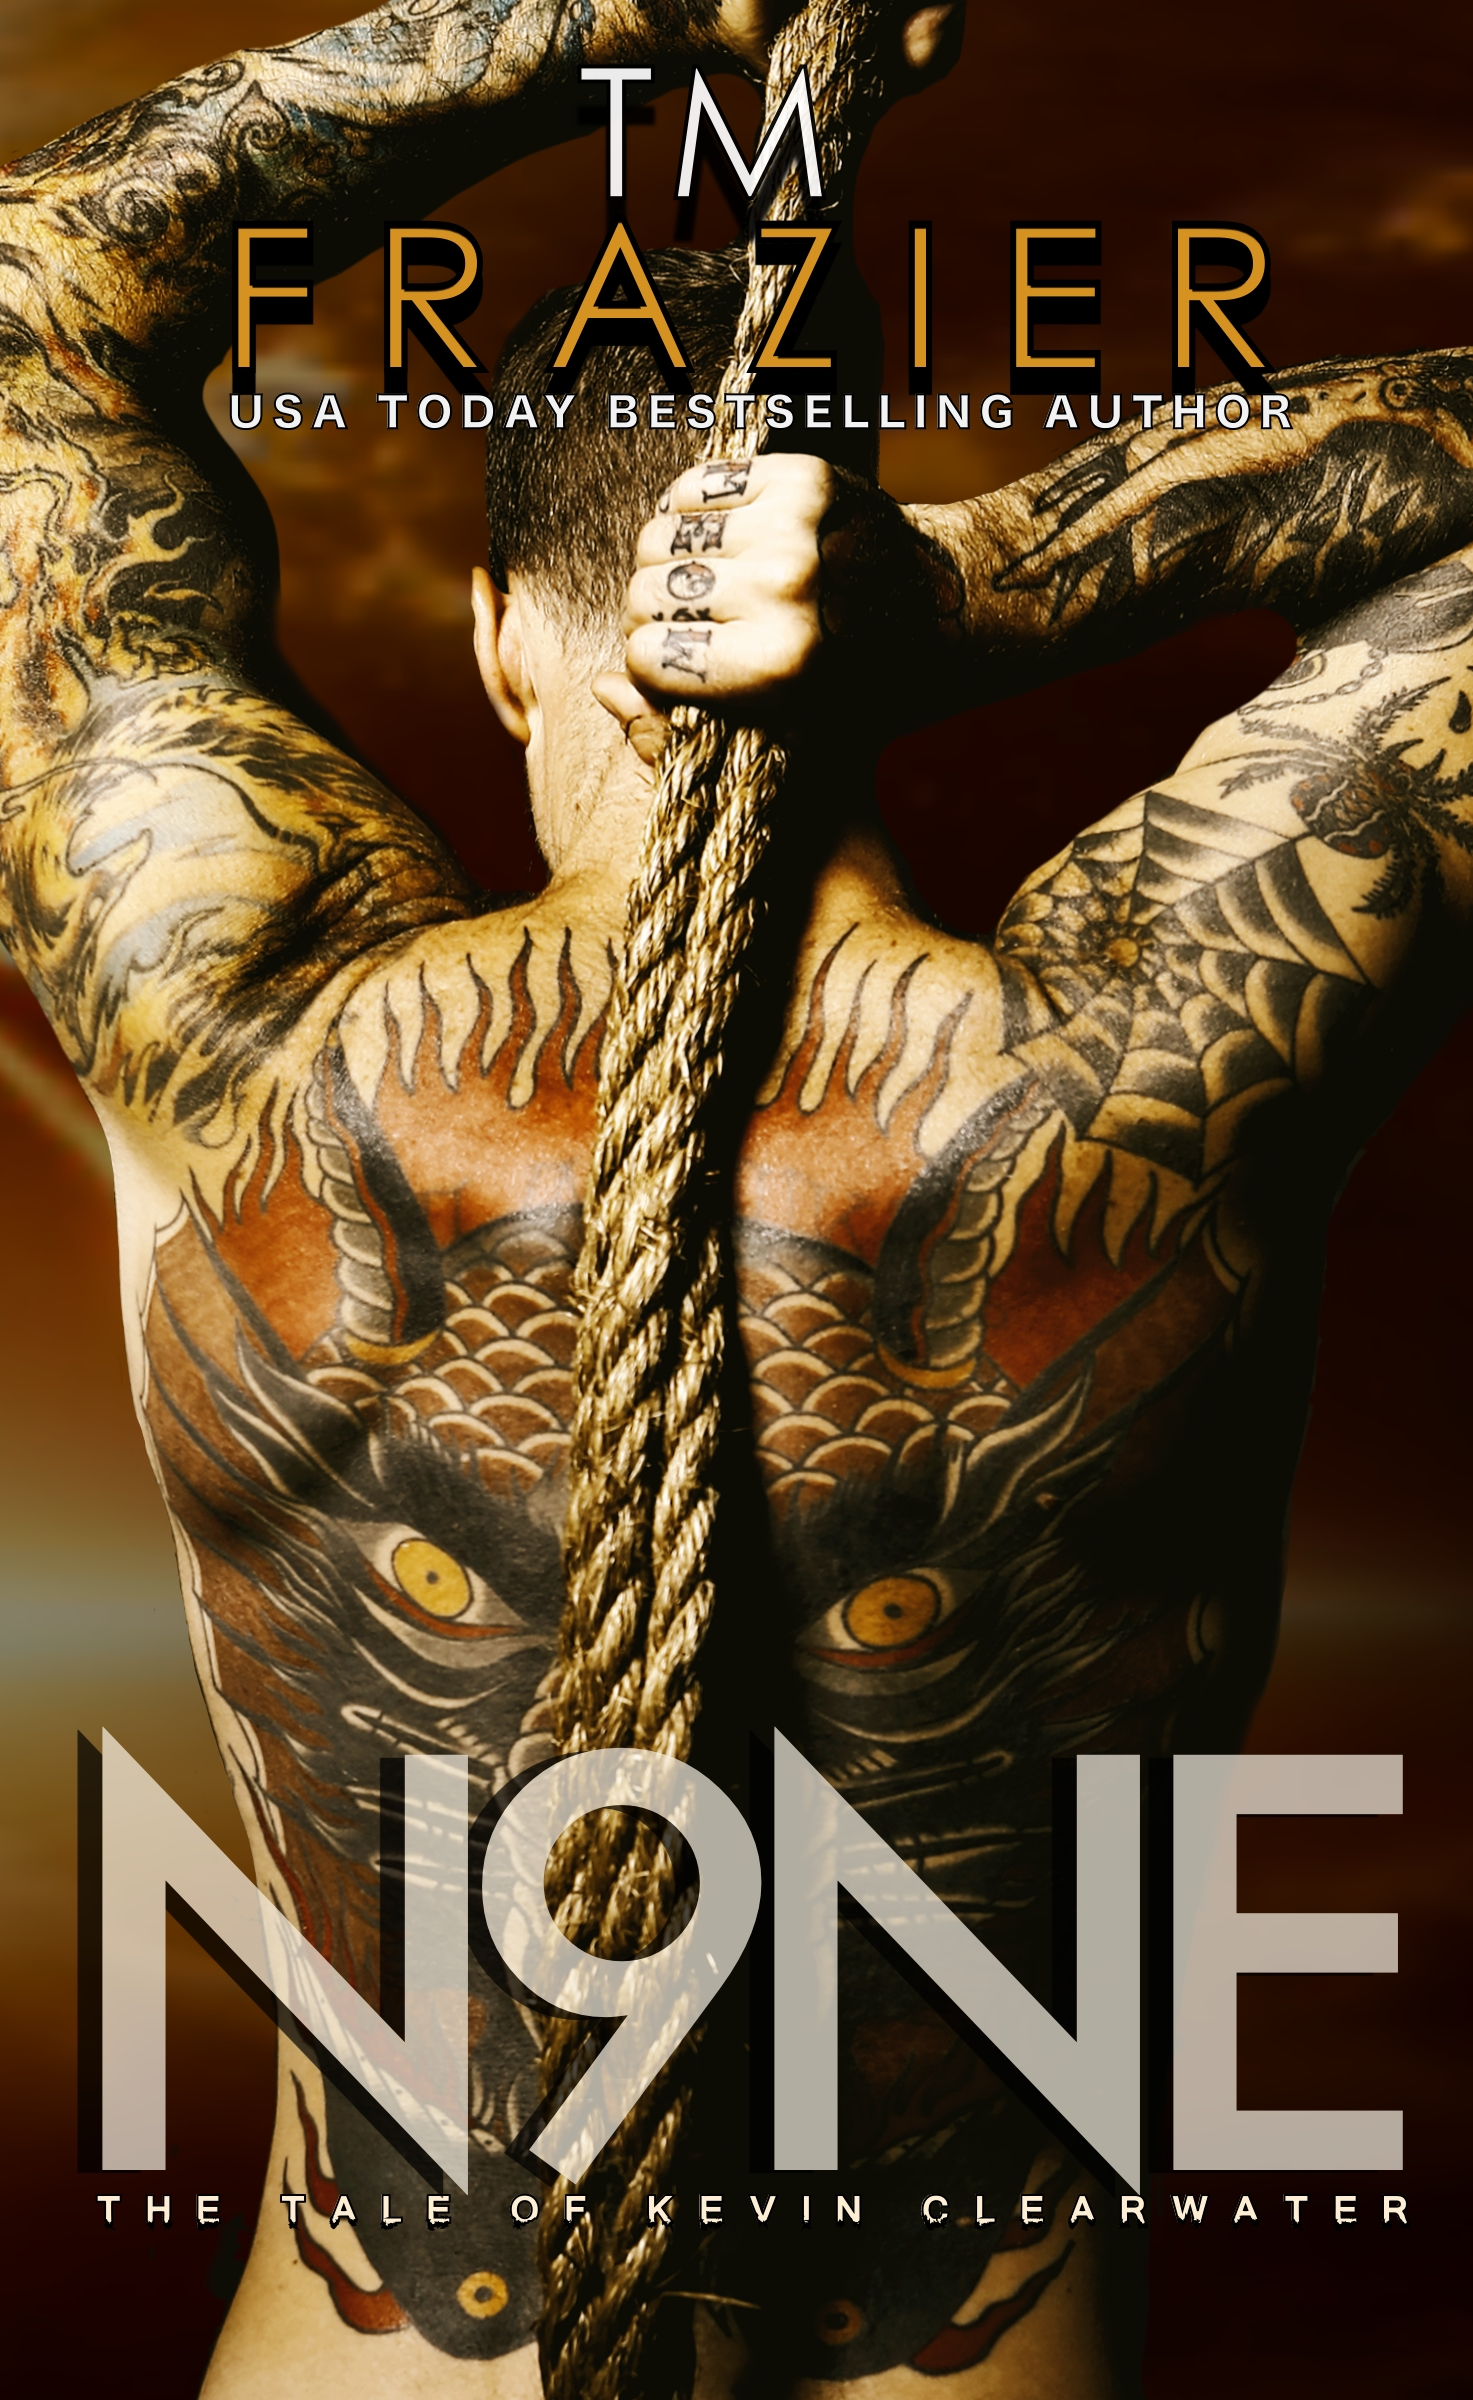 REVIEW: N9ne (The Tale of Kevin Clearwater) by TM Frazier